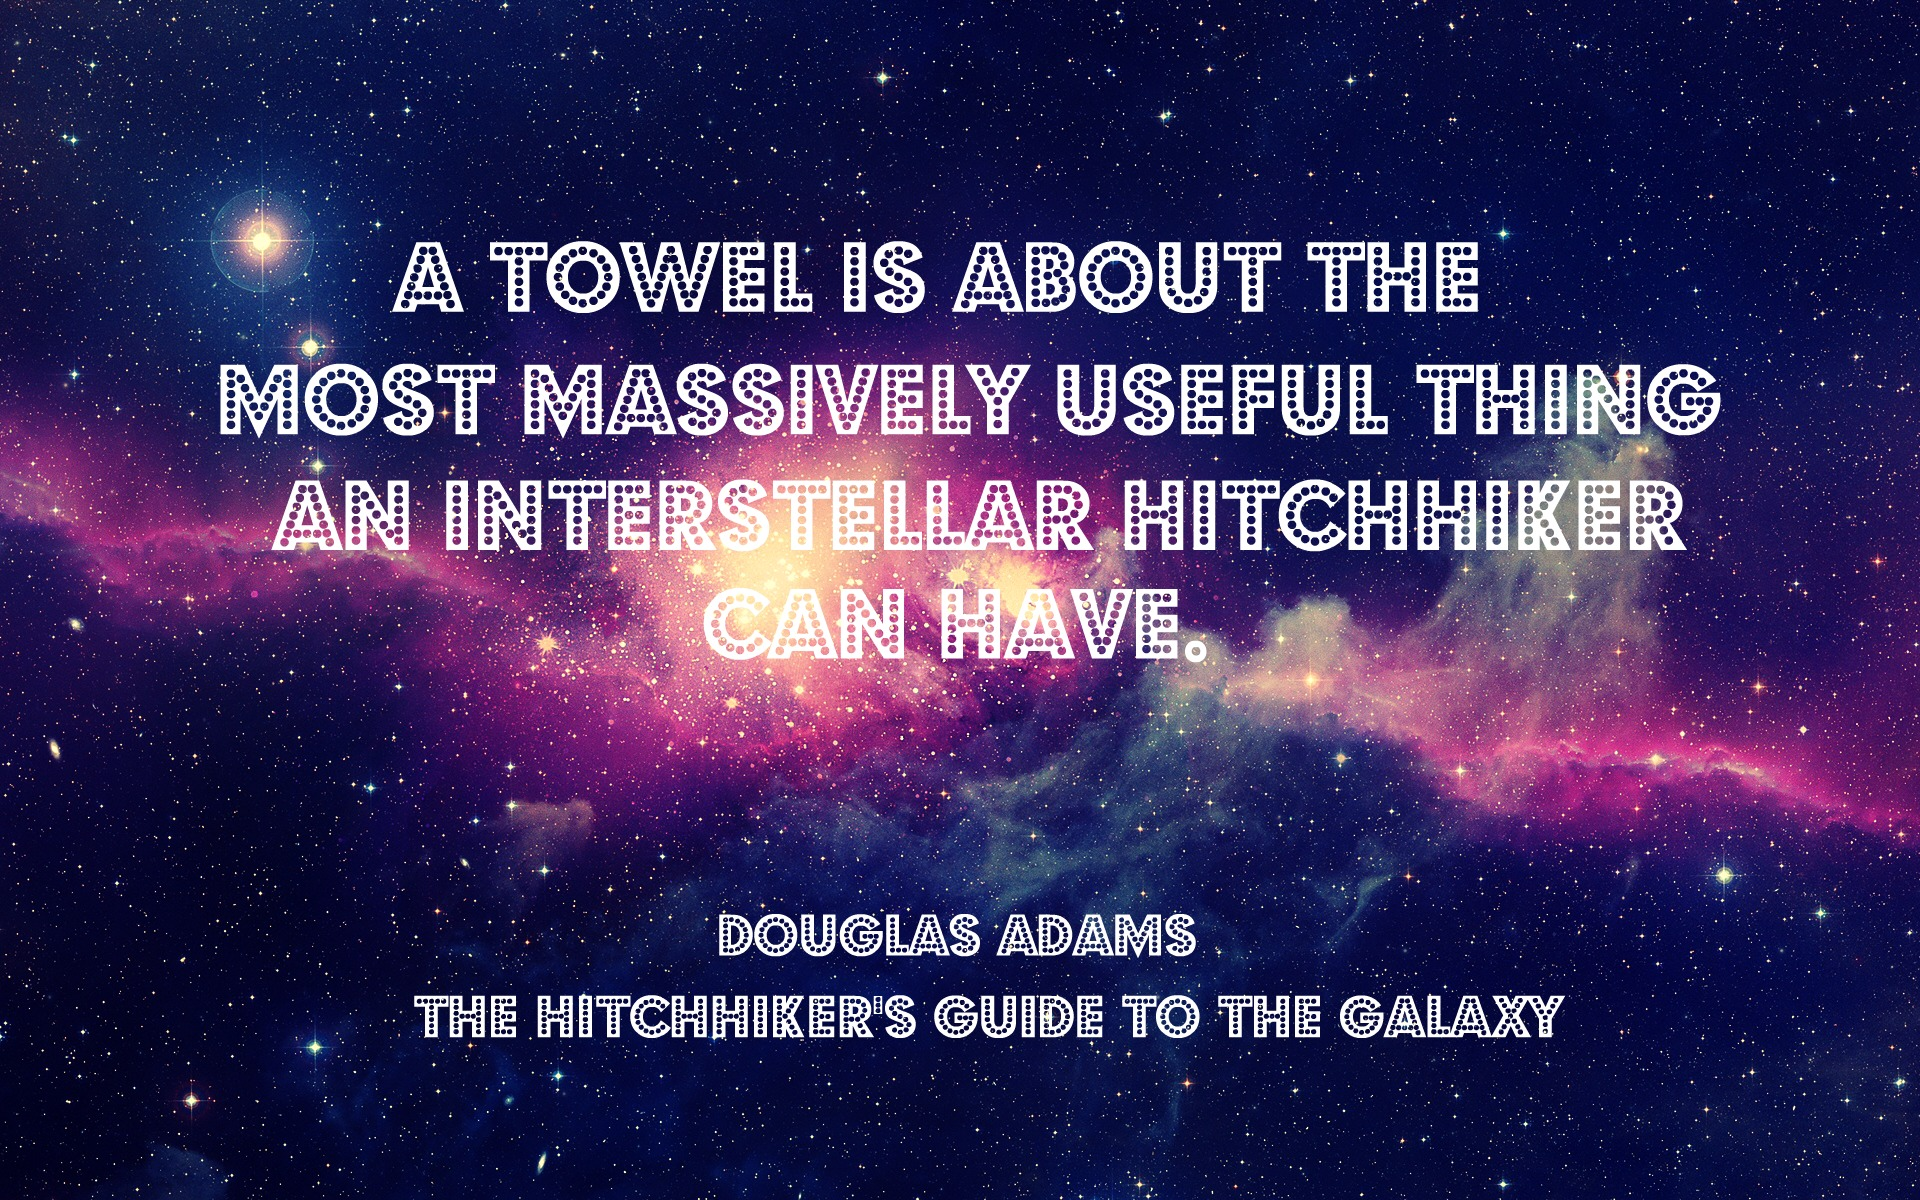 Galaxy Quotes New Post Your Favorite Hitchhiker's Guide To The Galaxy Quotes Herei